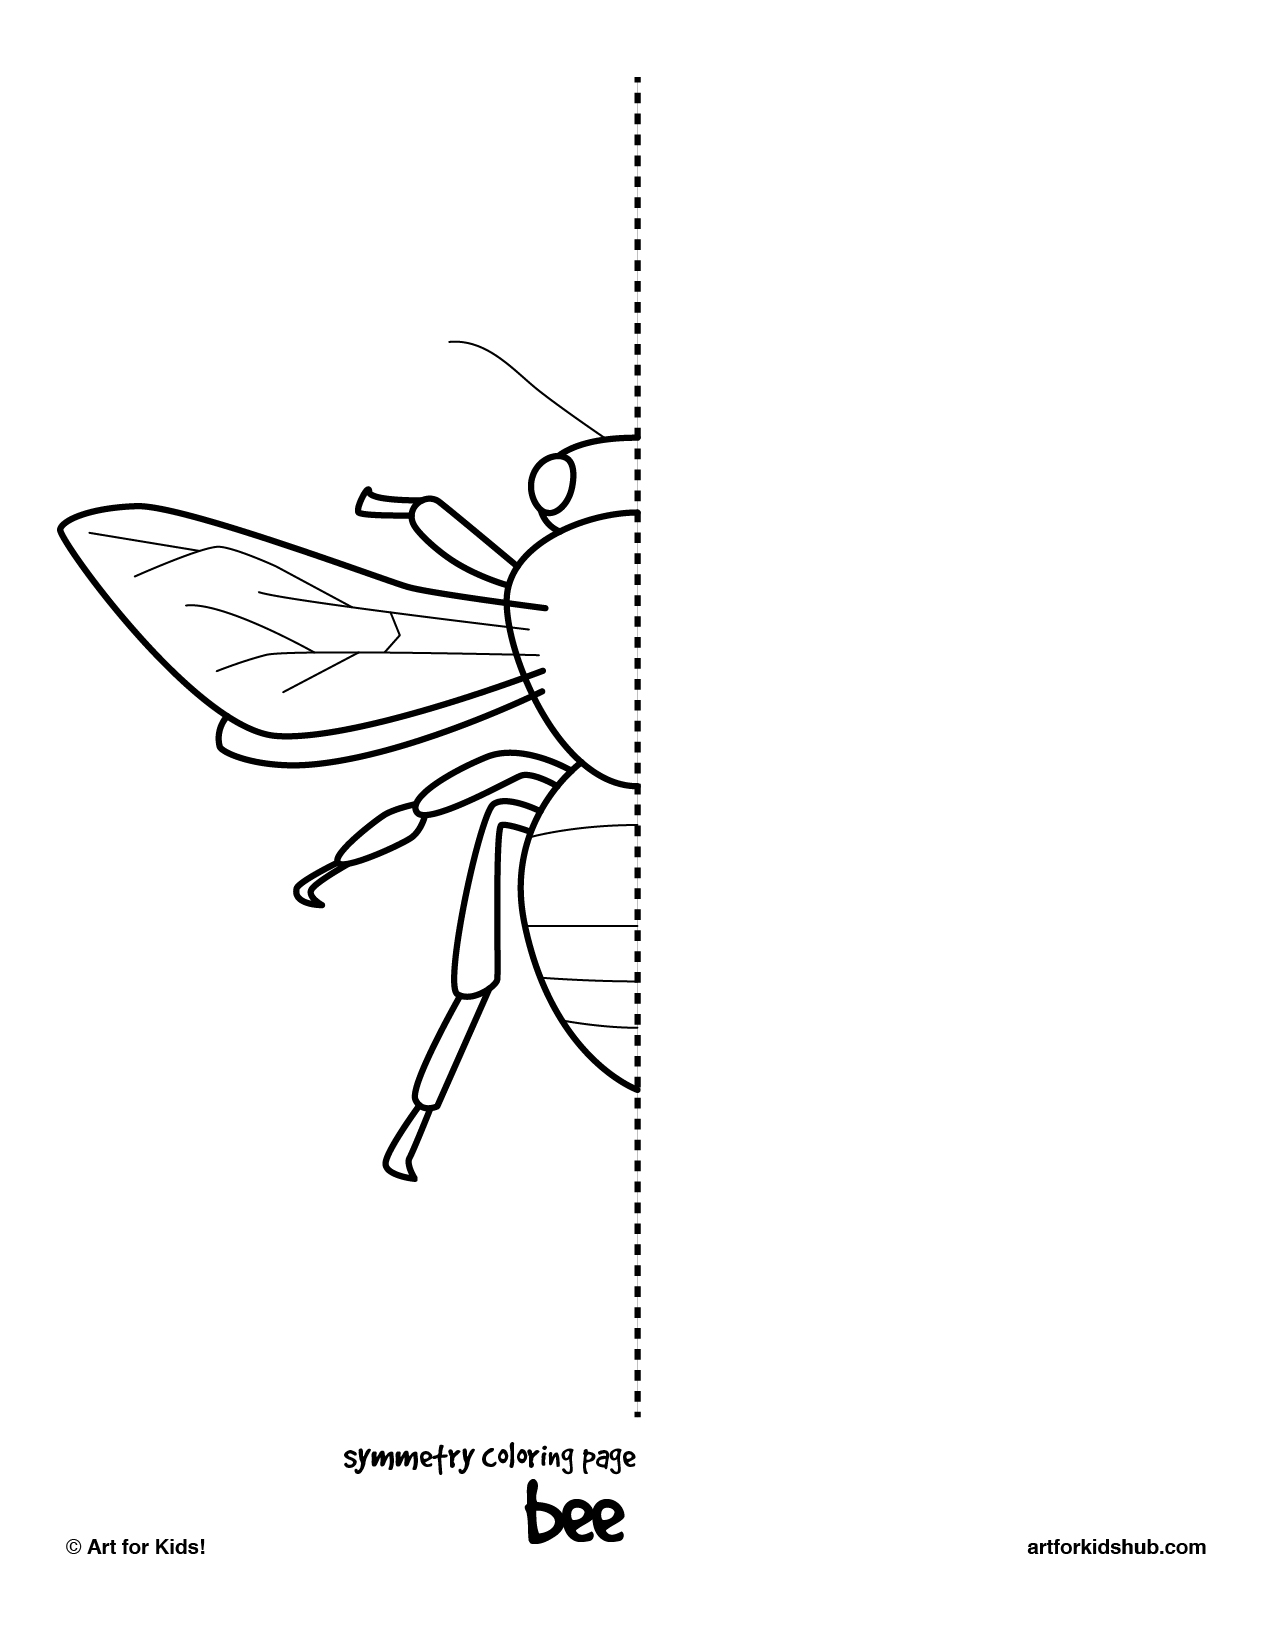 Butterfly Step By Step Drawing